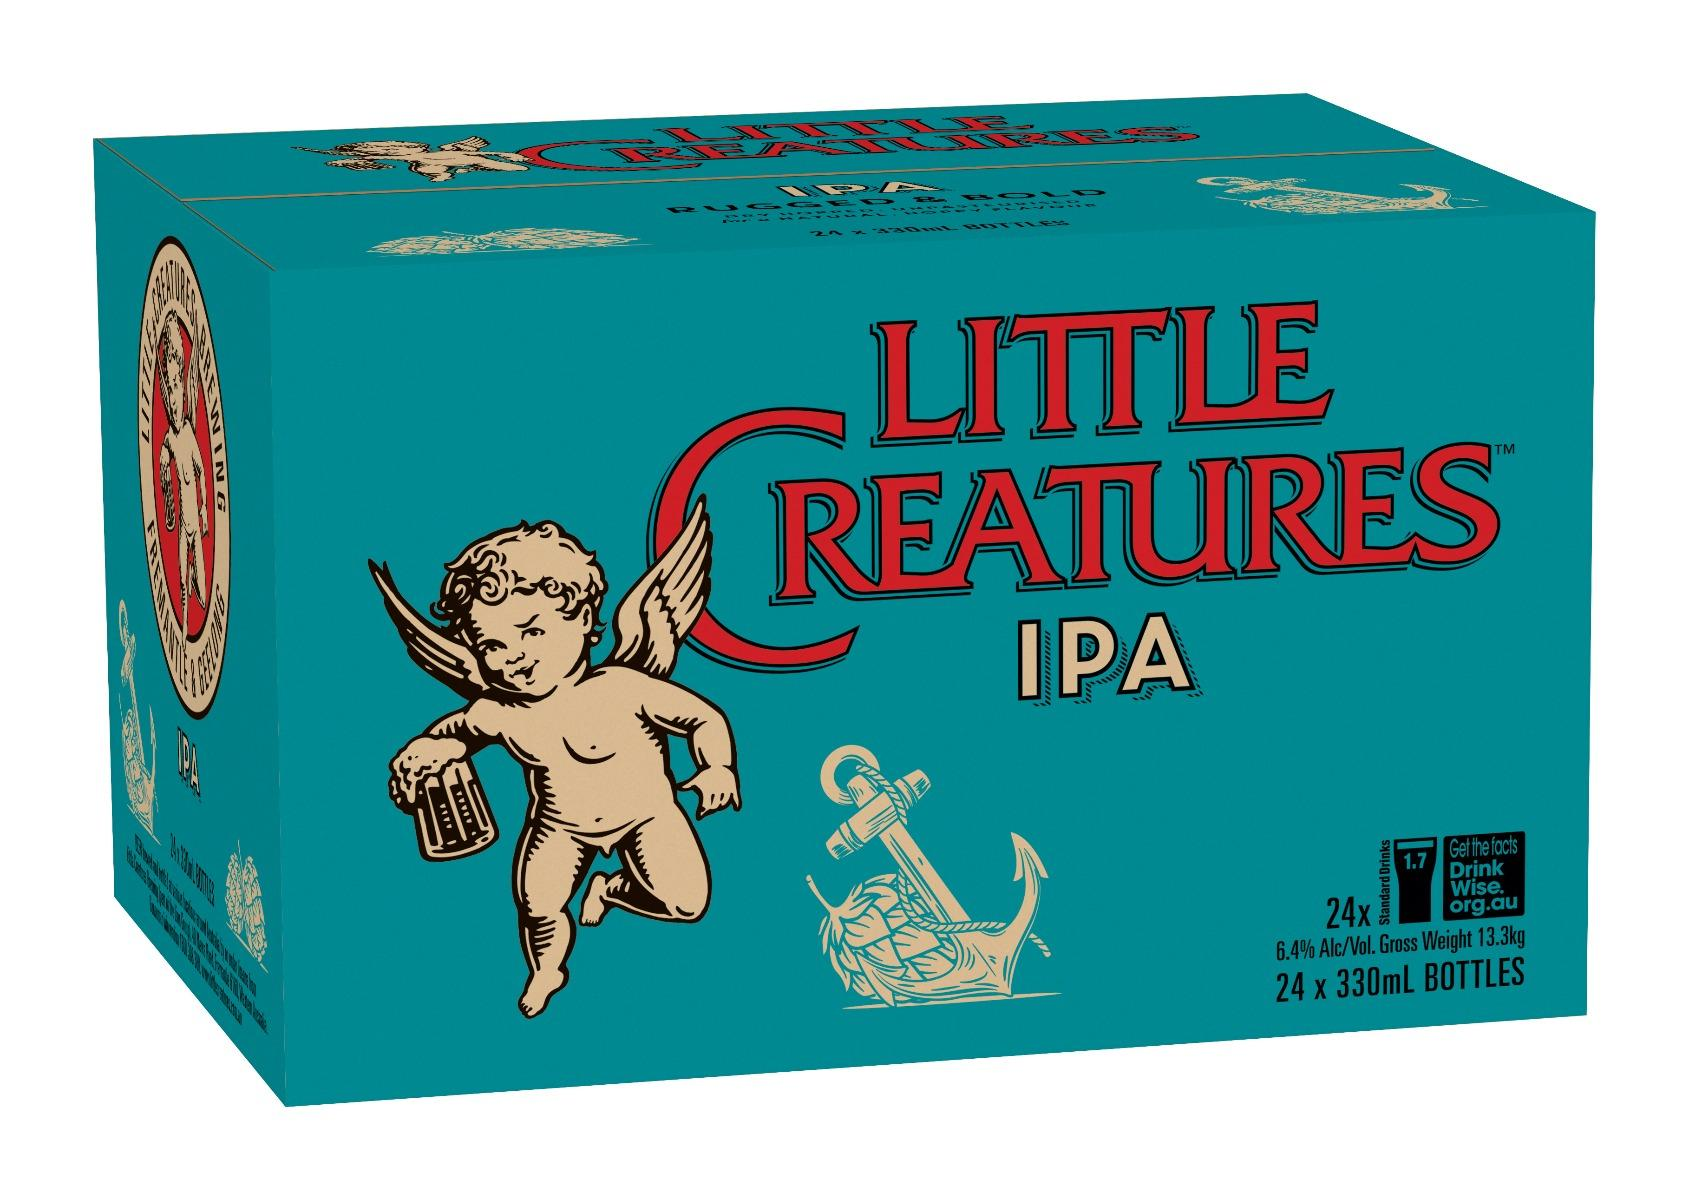 Little Creatures Ipa (24 X 330ml) By Little Creatures.